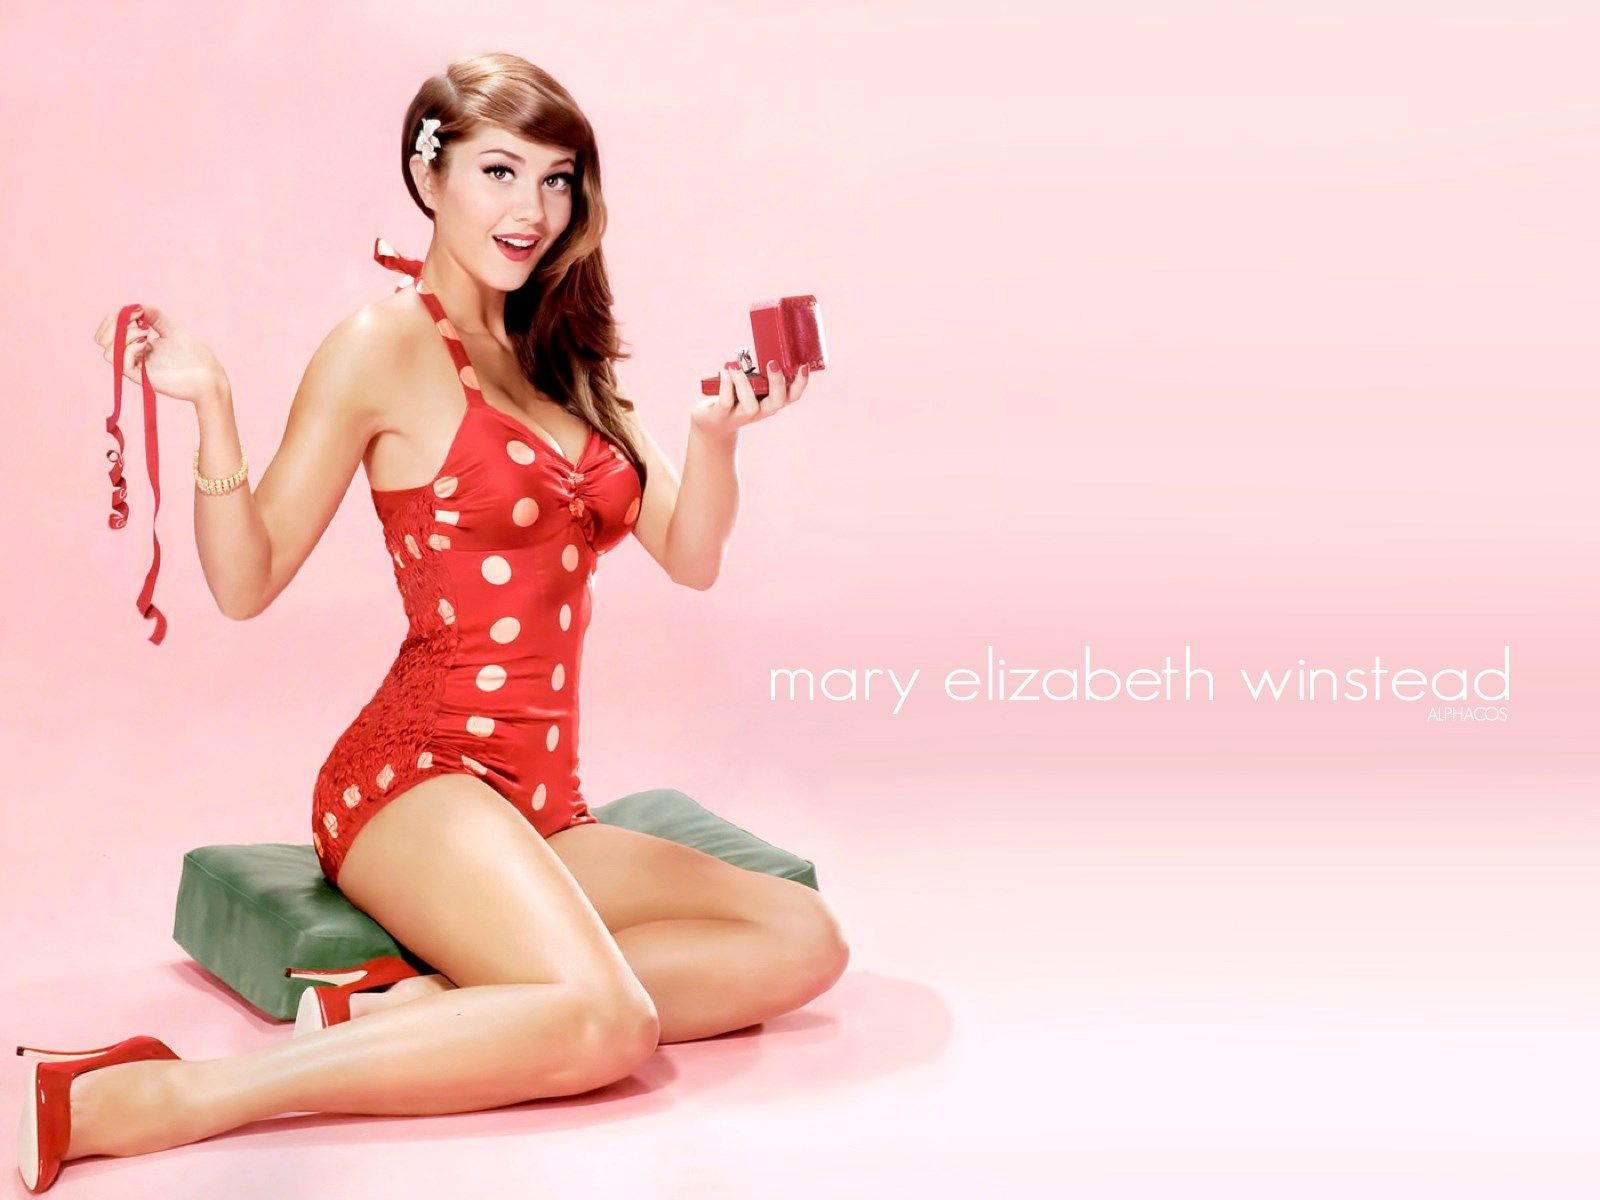 1626361, mary elizabeth winstead category - free desktop wallpaper